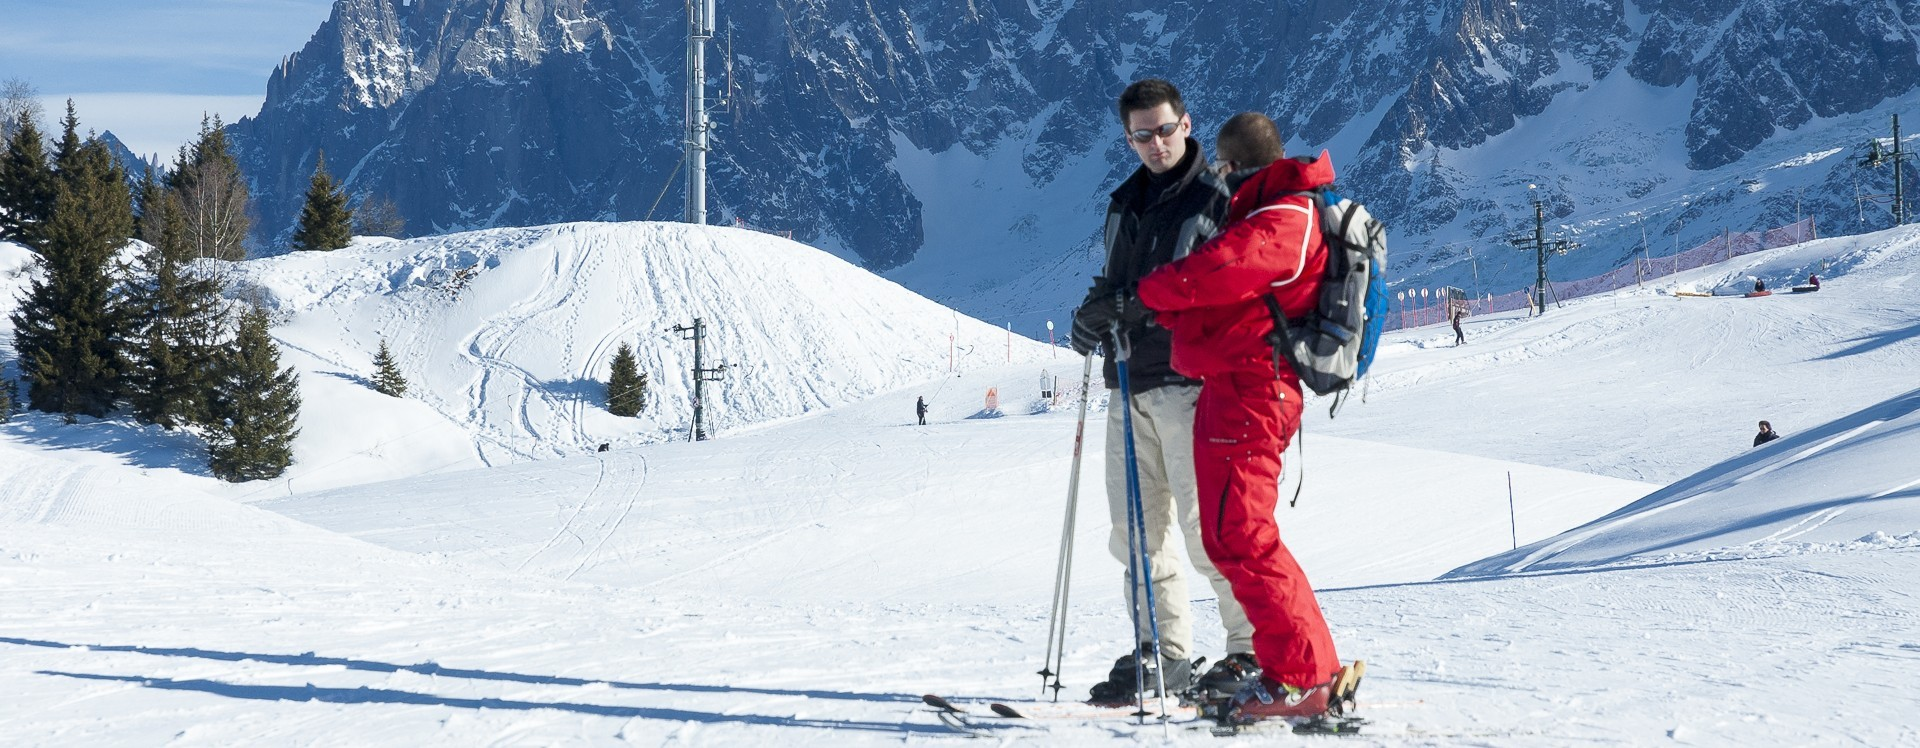 Skier with ESF instructor at Les Houches, French Alps